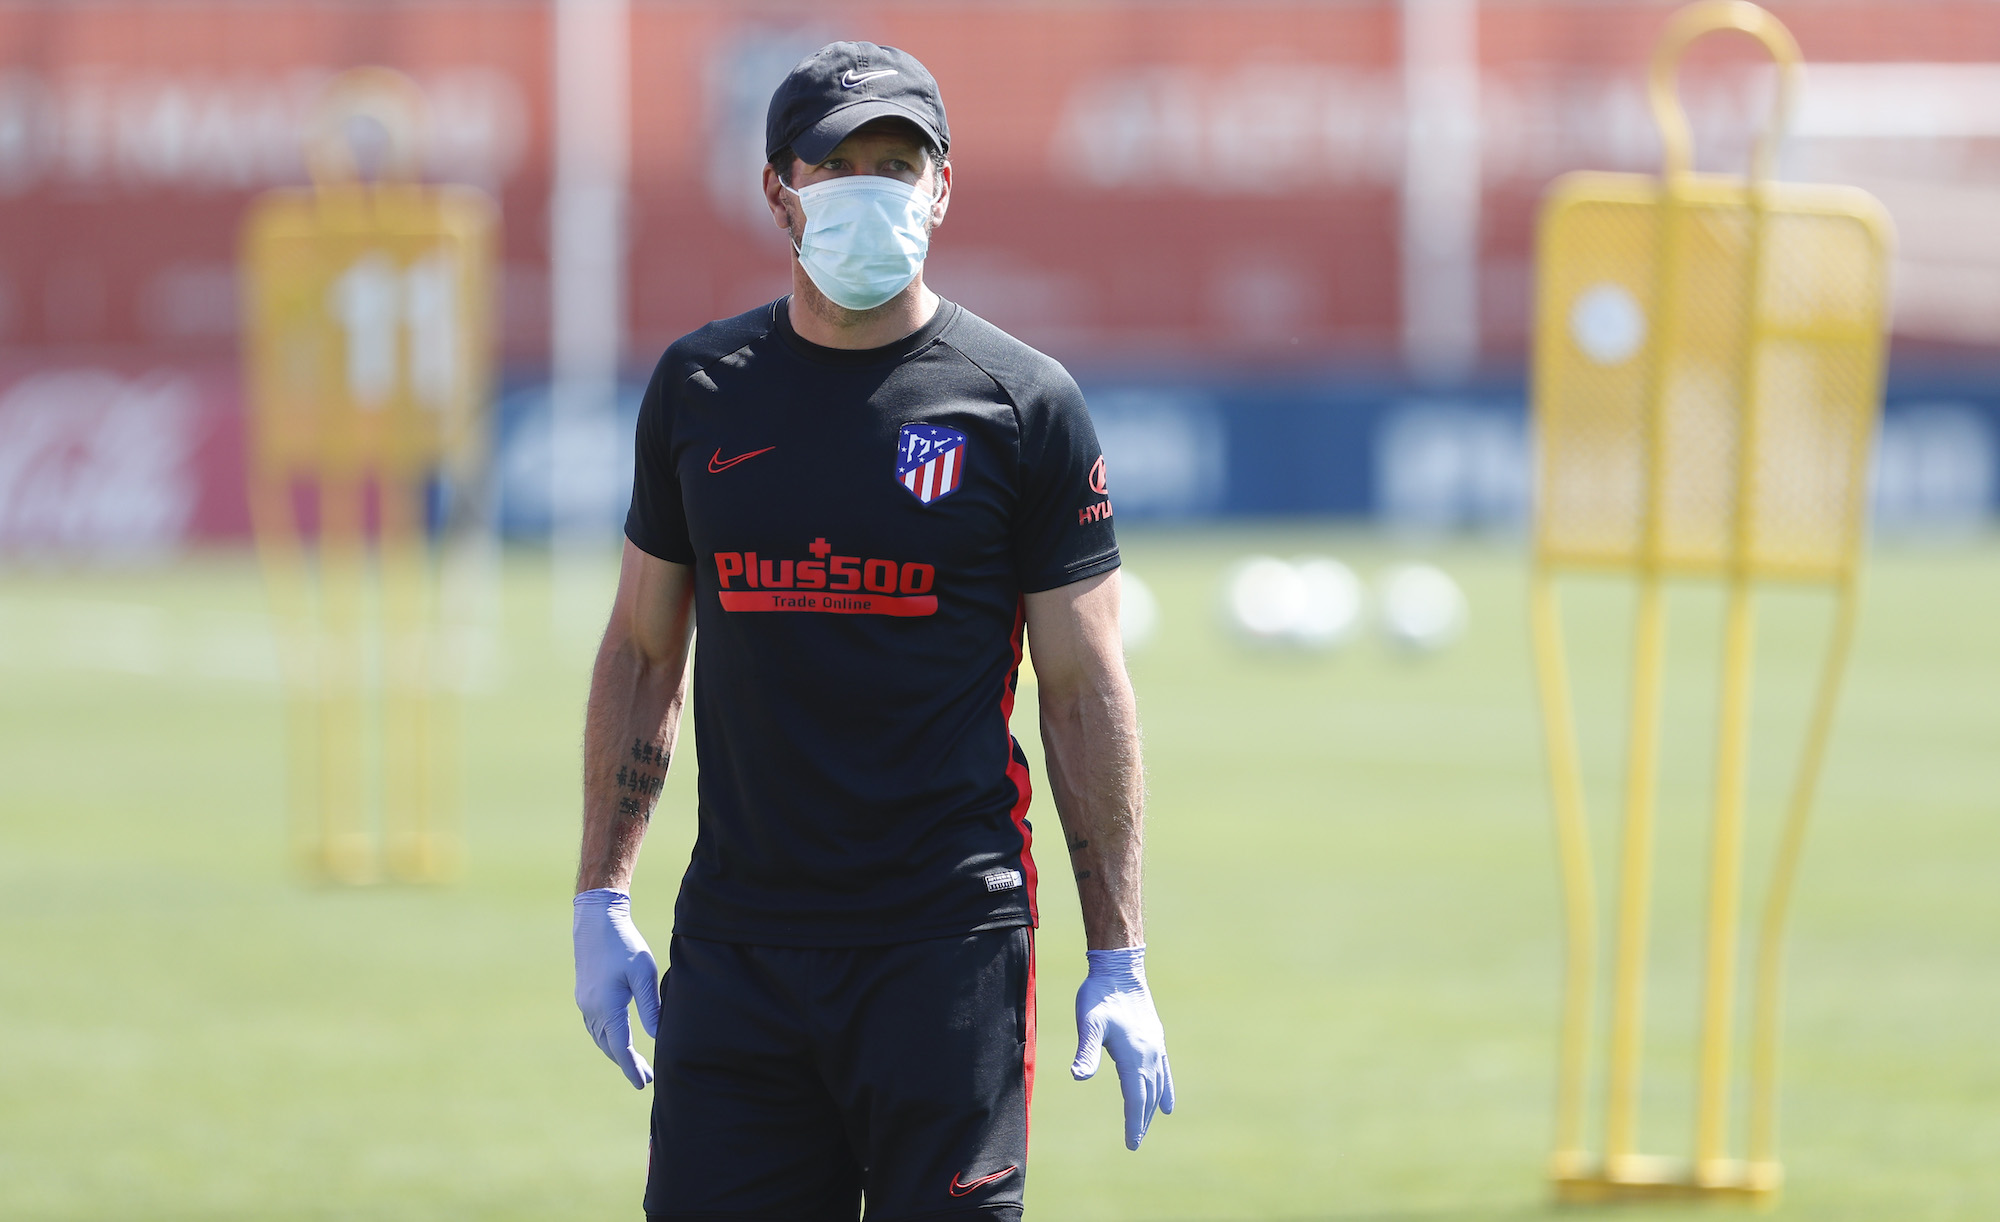 Head Coach Diego Pablo Simeone of Atletico de Madrid looks on during a training session on May 22, 2020 in Madrid, Spain.